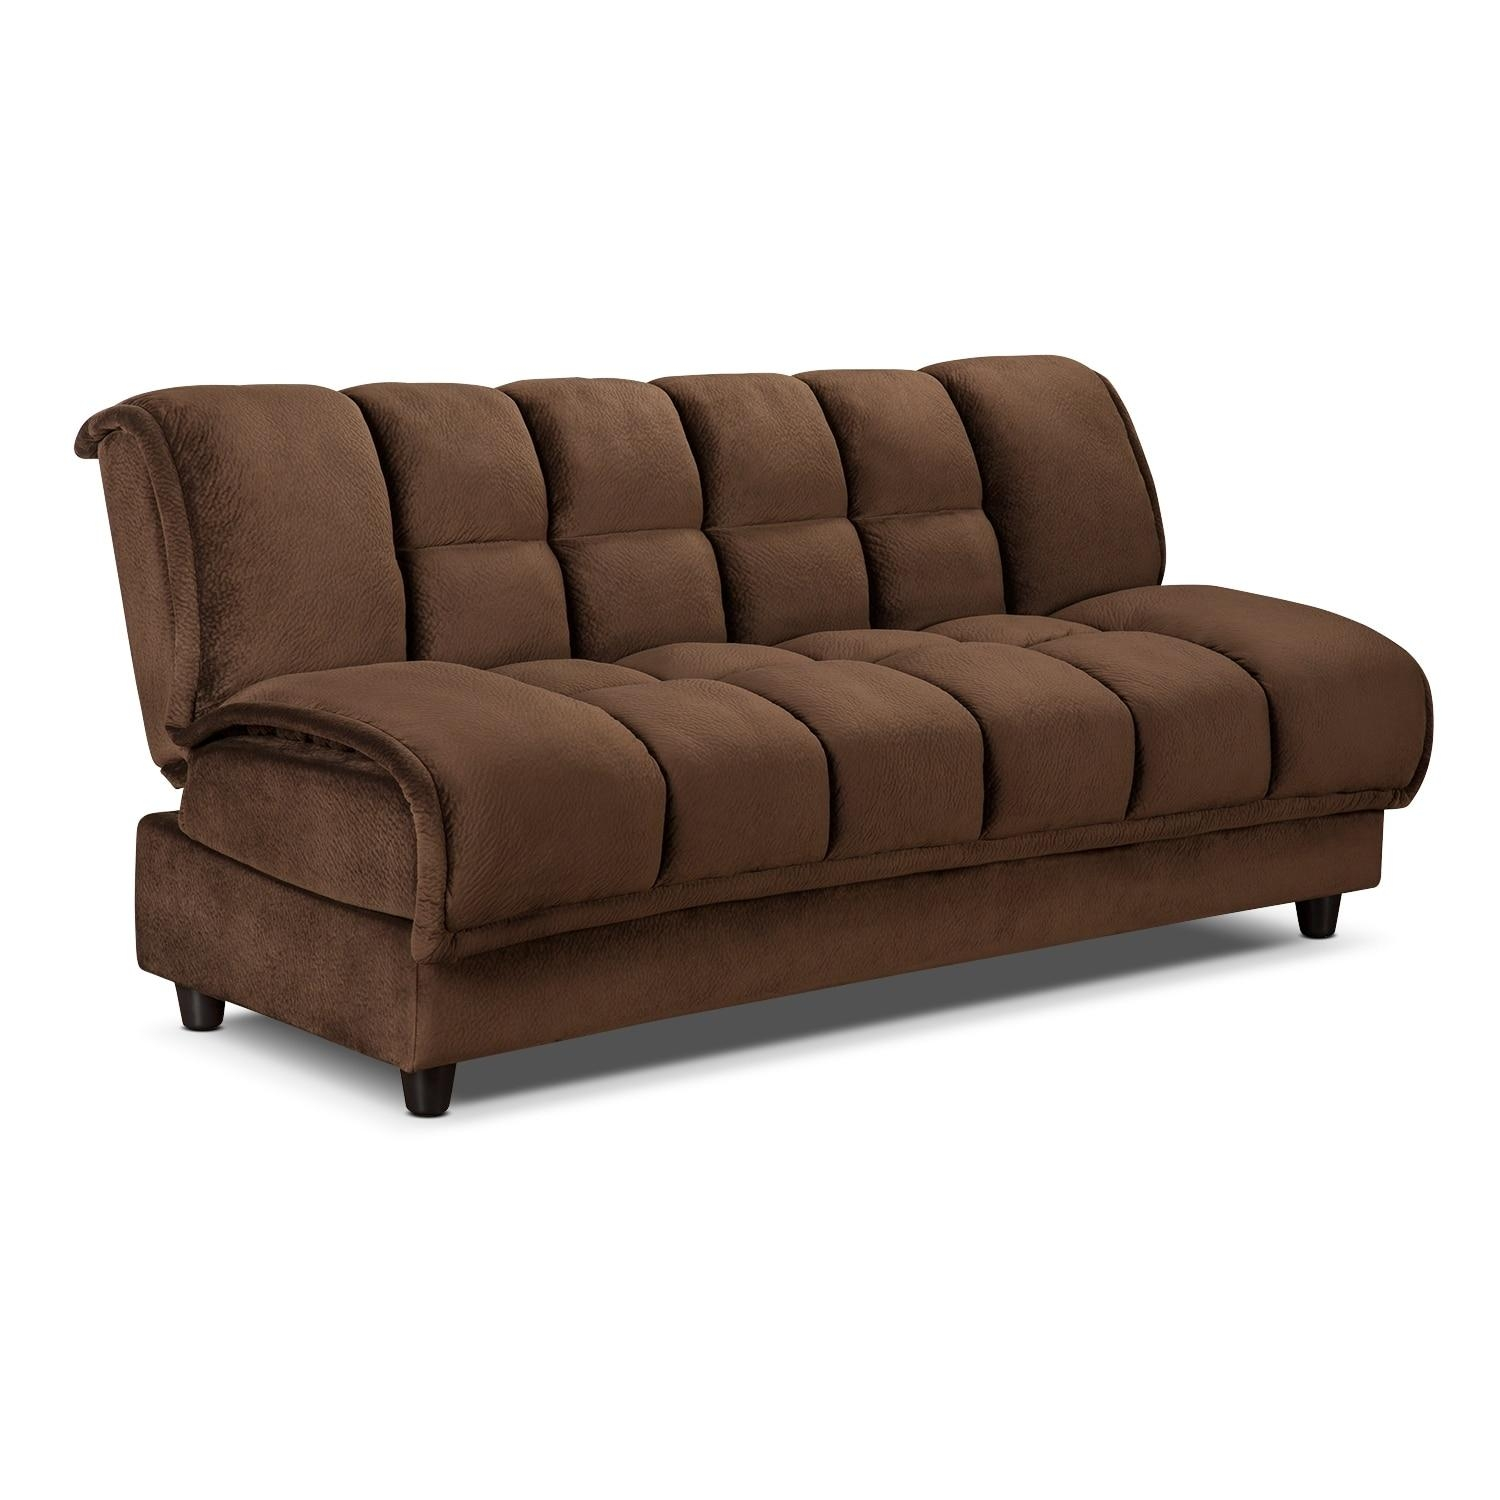 Featured Image of American Sofa Beds